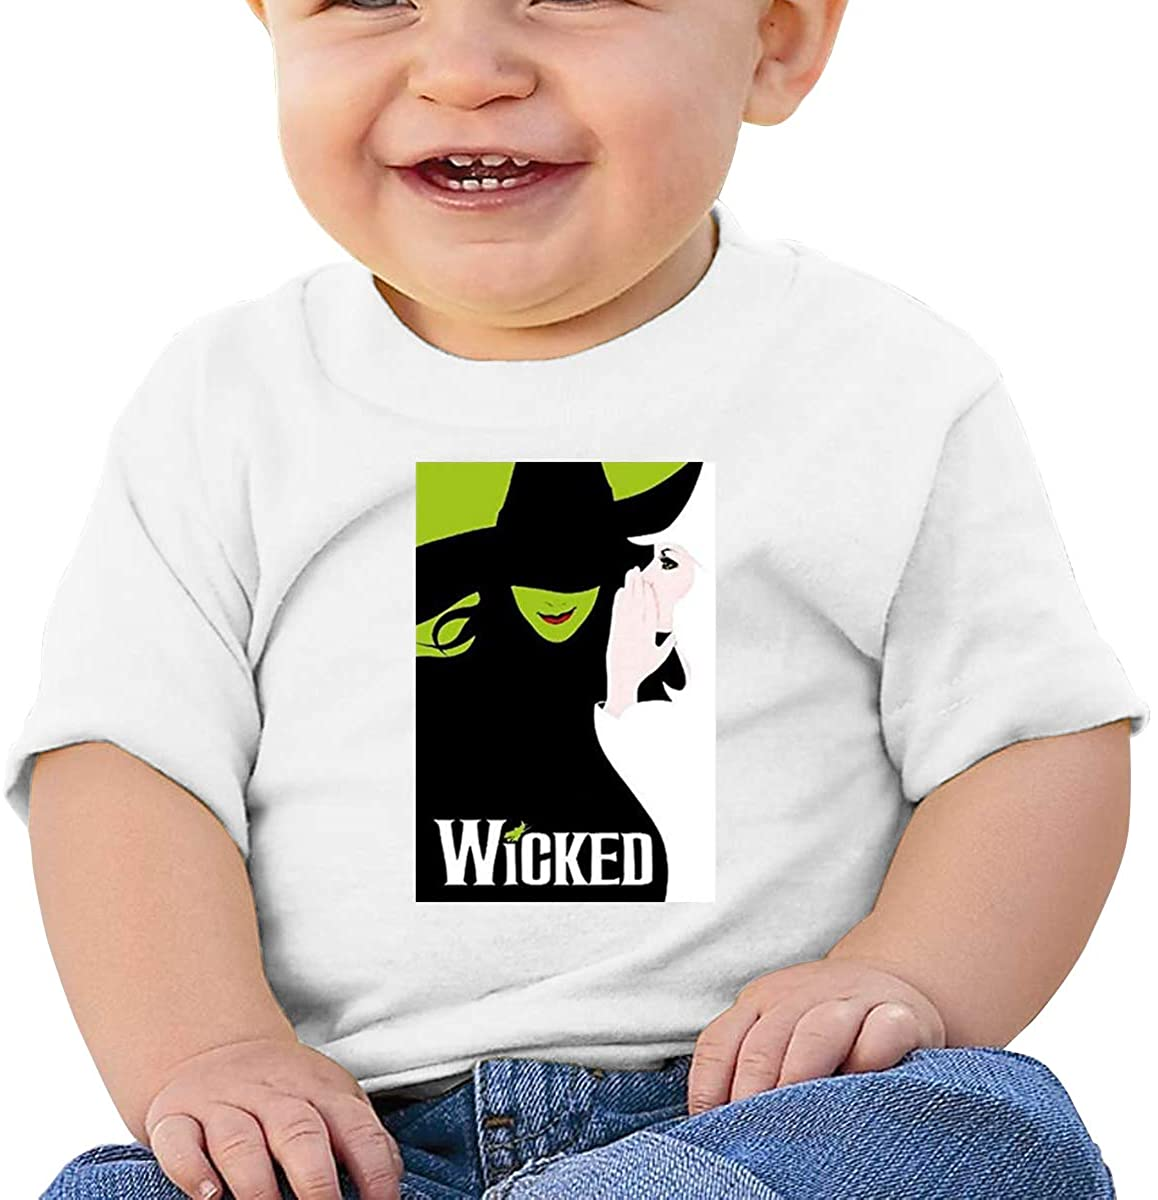 6-24 Months Boy and Girl Baby Short Sleeve T-Shirt Wicked The Musical Original Minimalist Style White